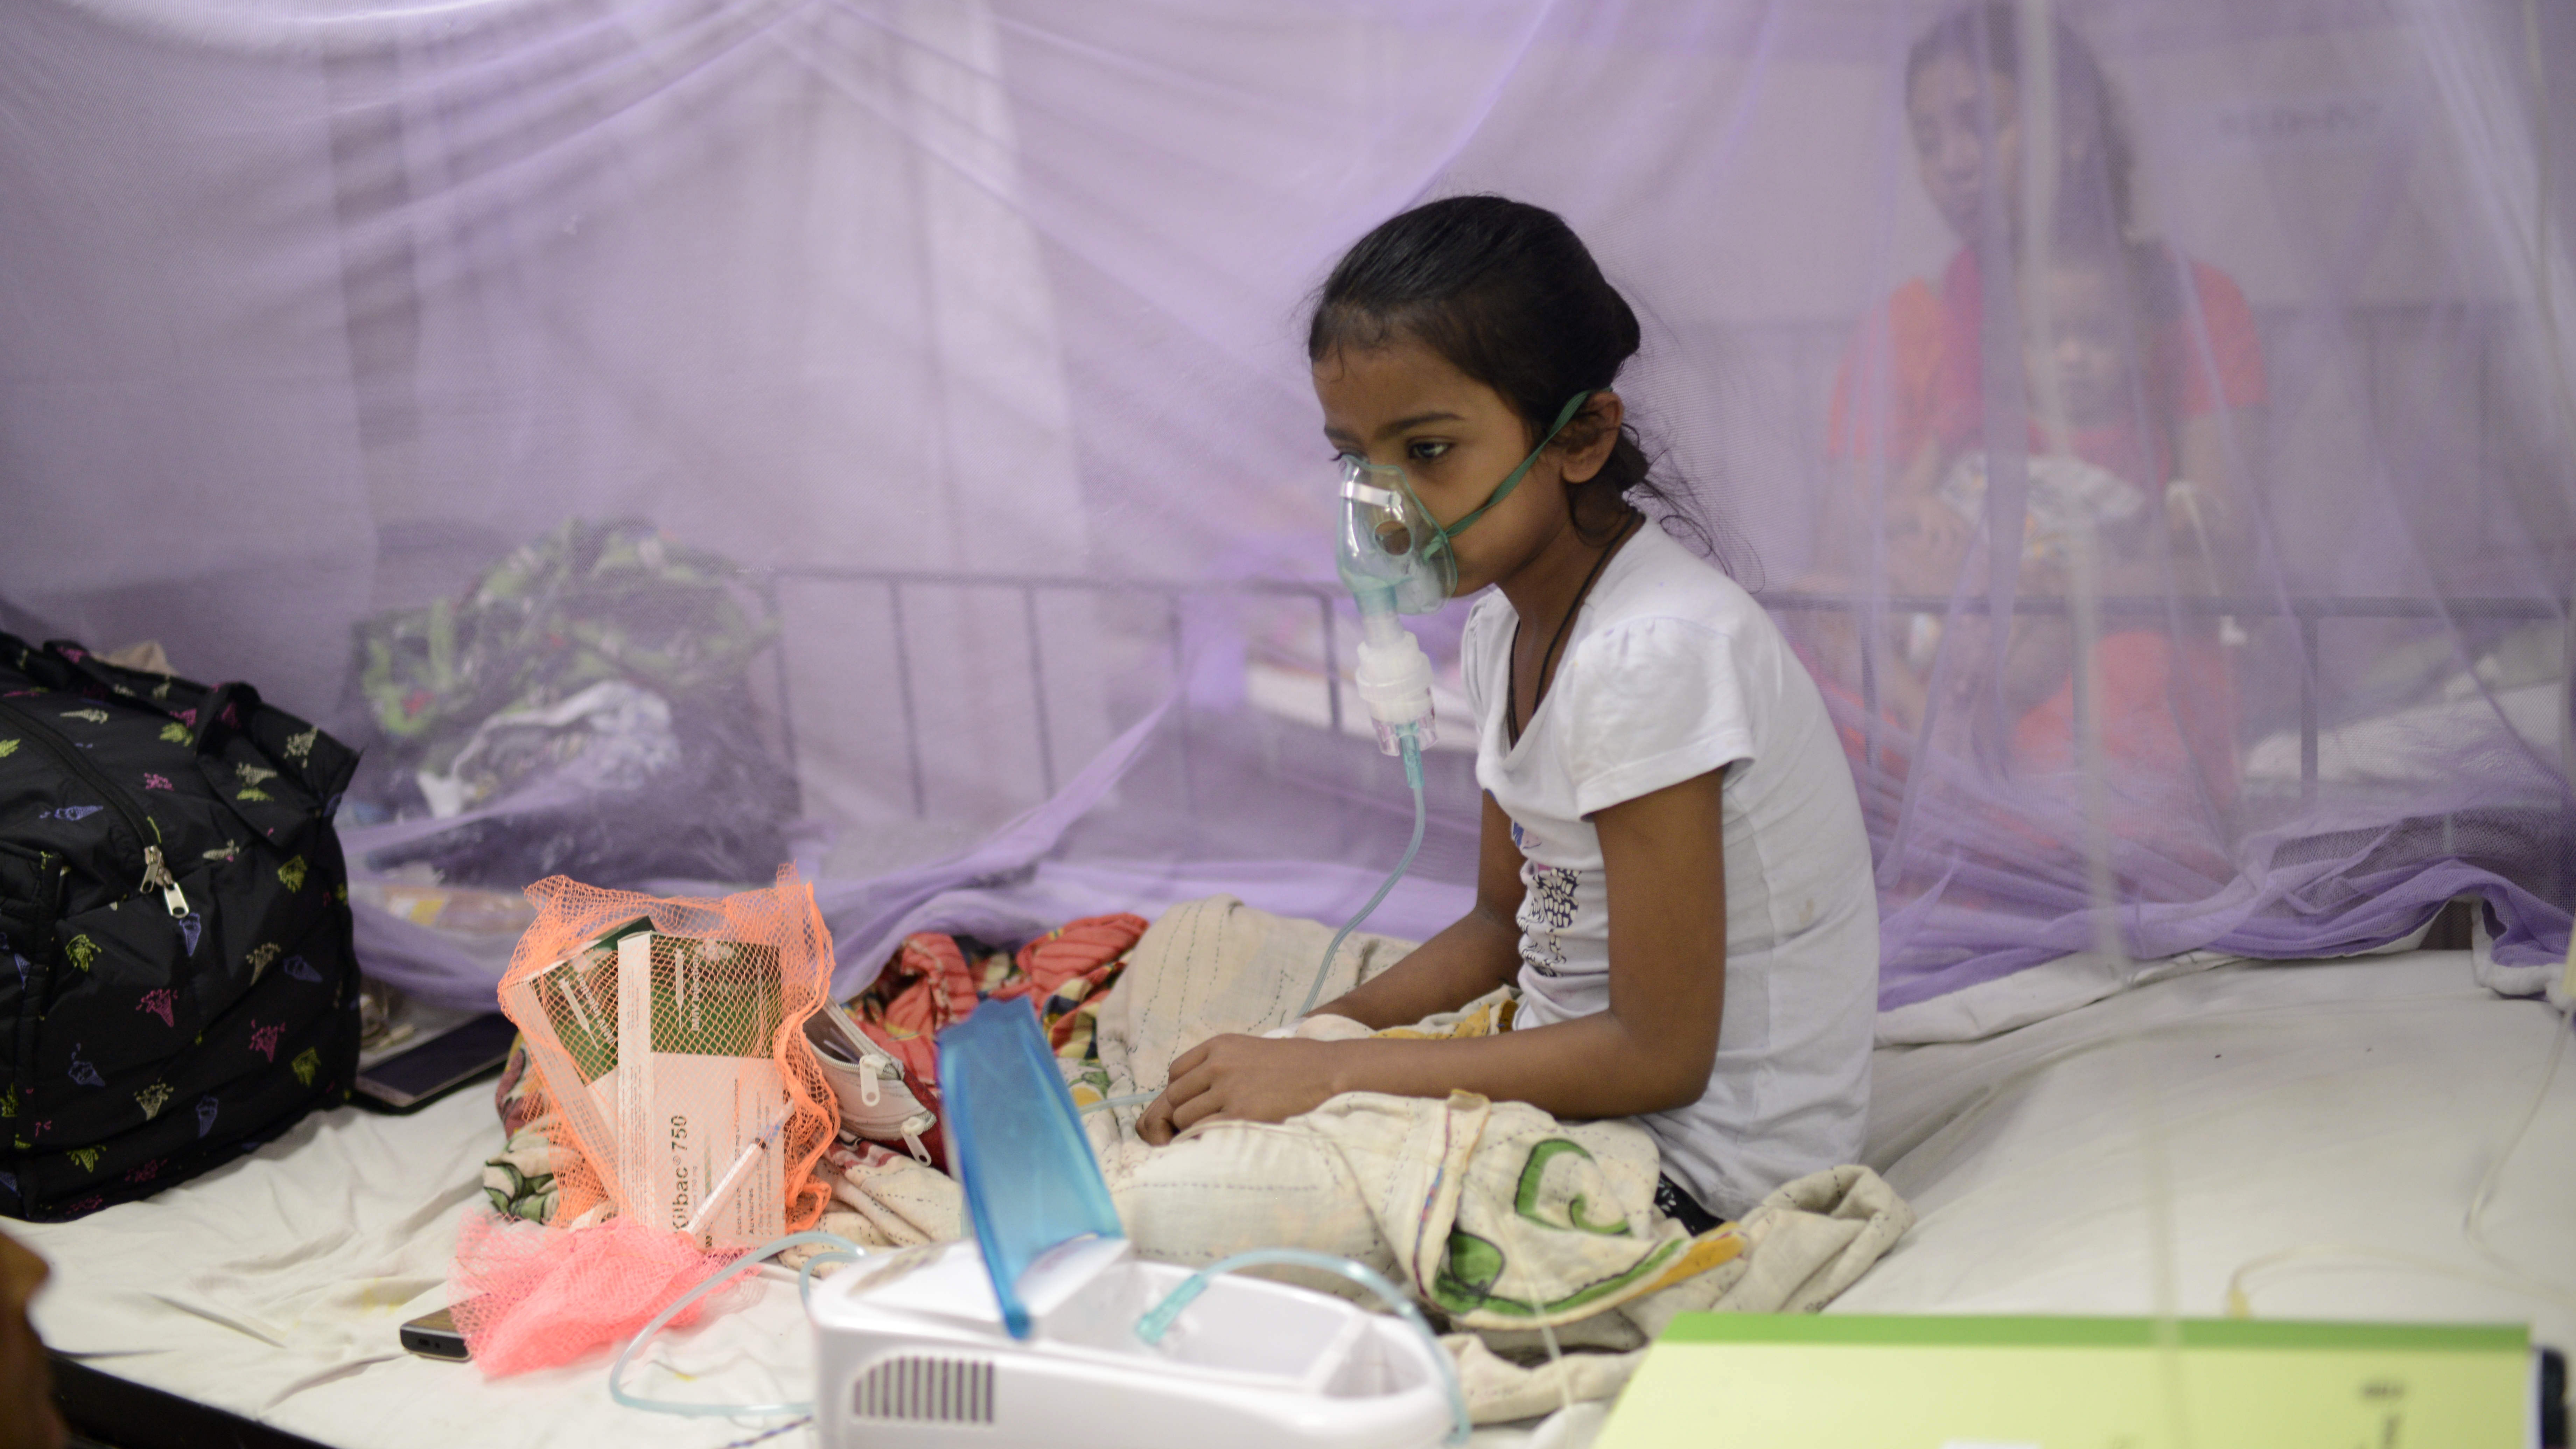 Bangladesh Reports More Than 13,000 Dengue Cases In July